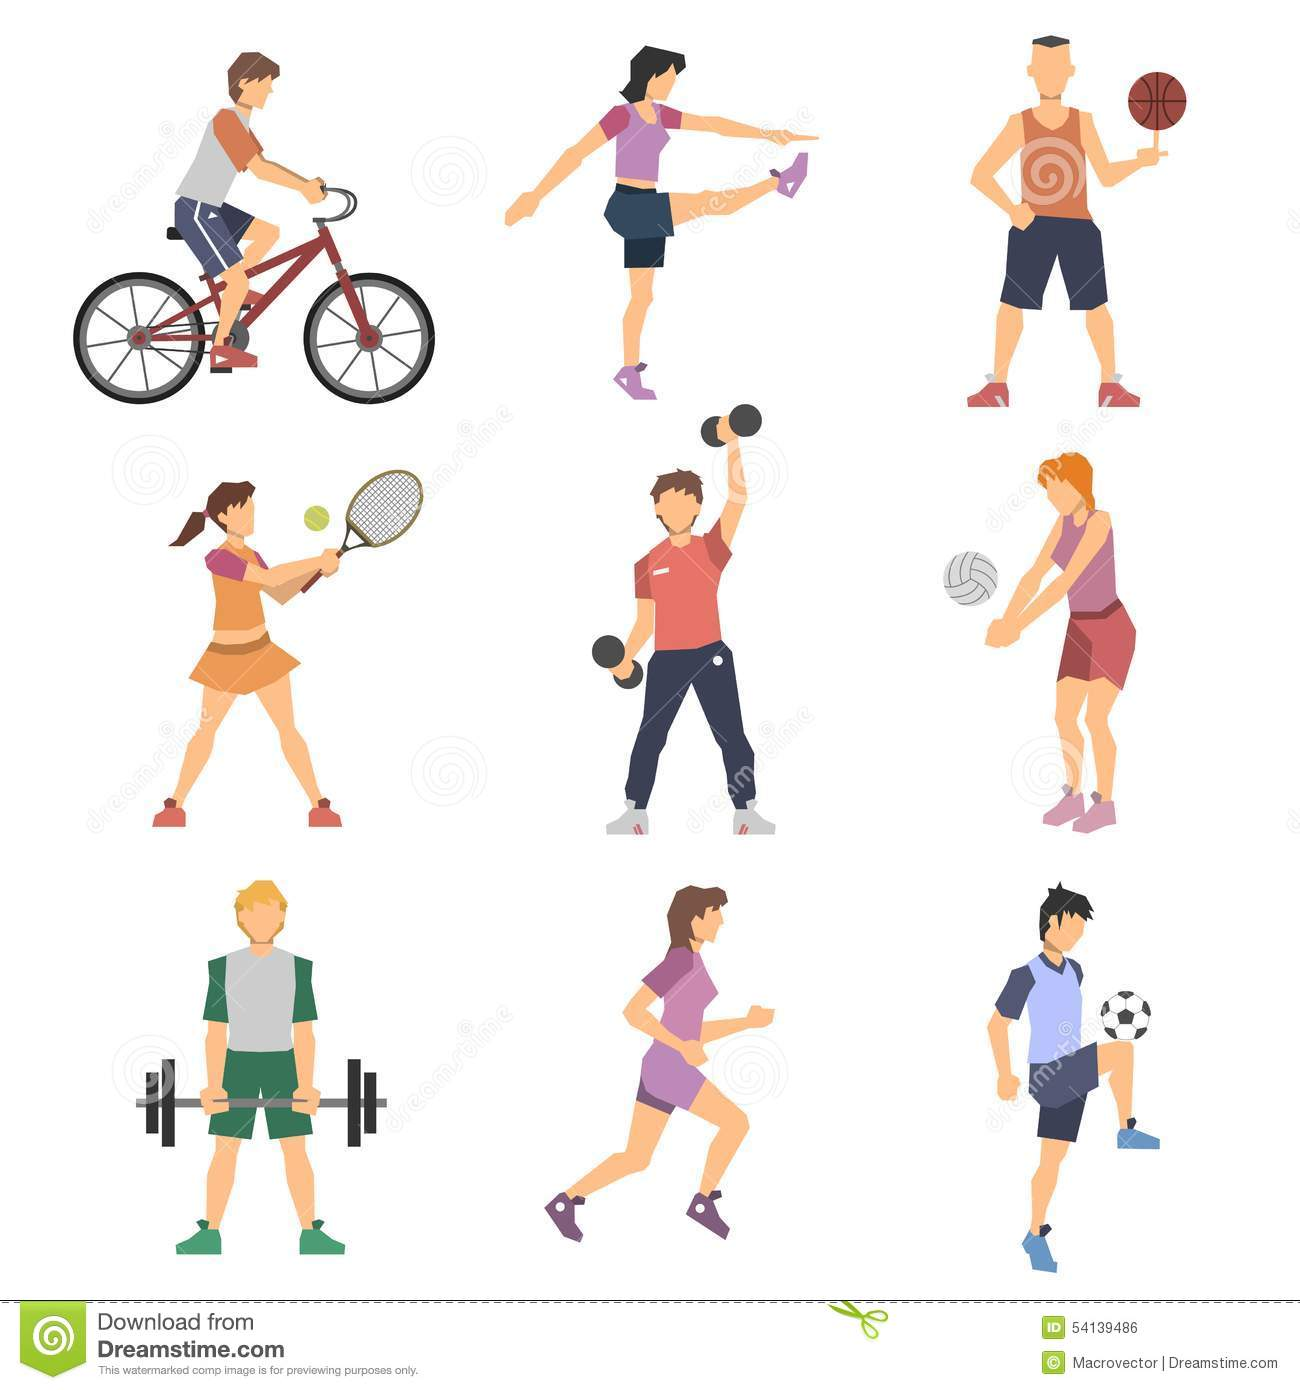 an analysis of the women playing in mens sports Founded in 1974 by tennis legend, billie jean king, the women's sports foundation is dedicated to creating leaders by providing girls access to sports.